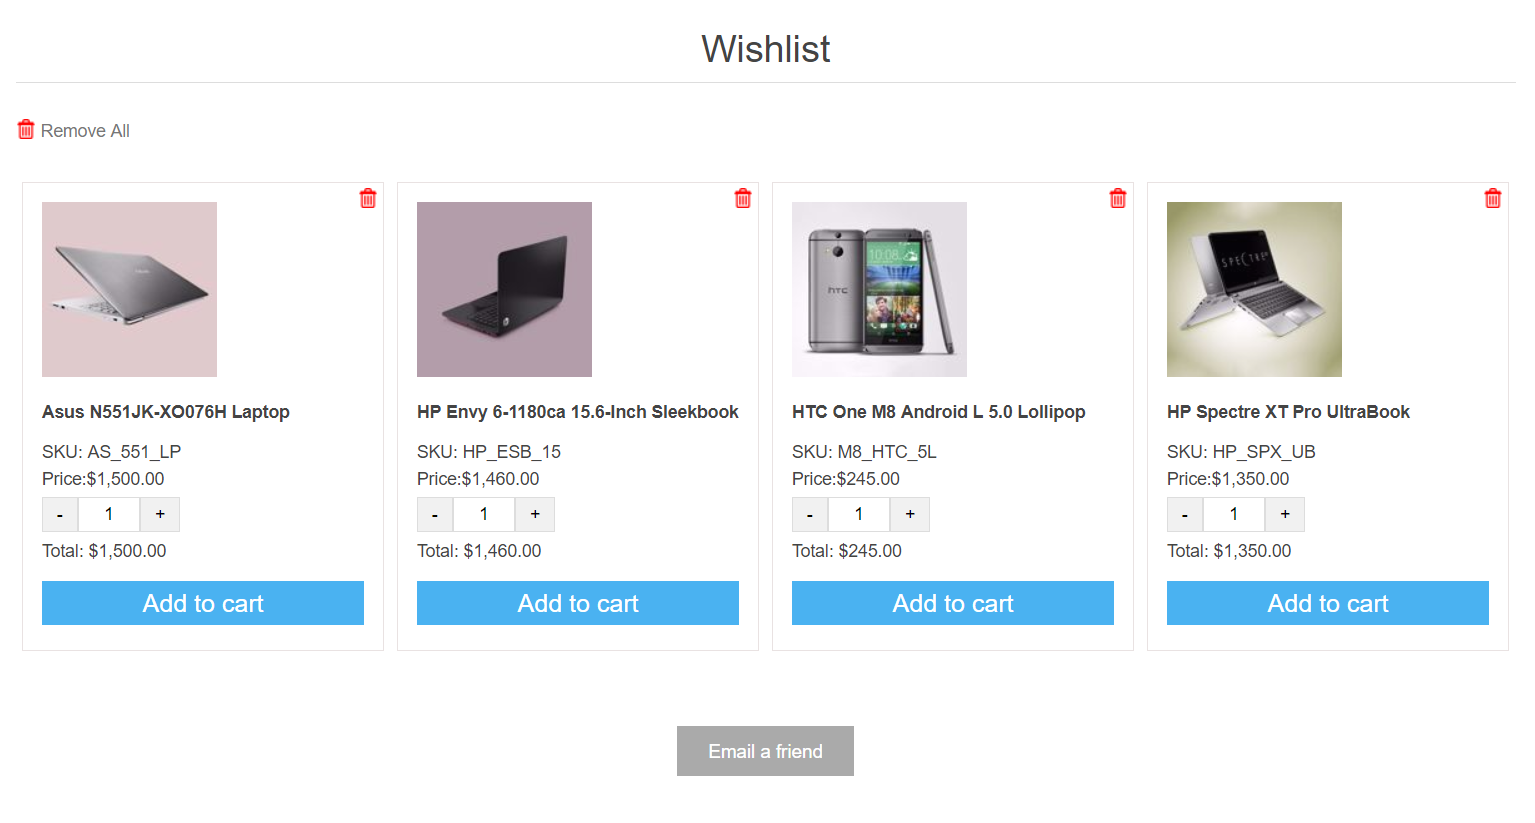 Ajax Wishlist Page (nopvalley.com) の画像